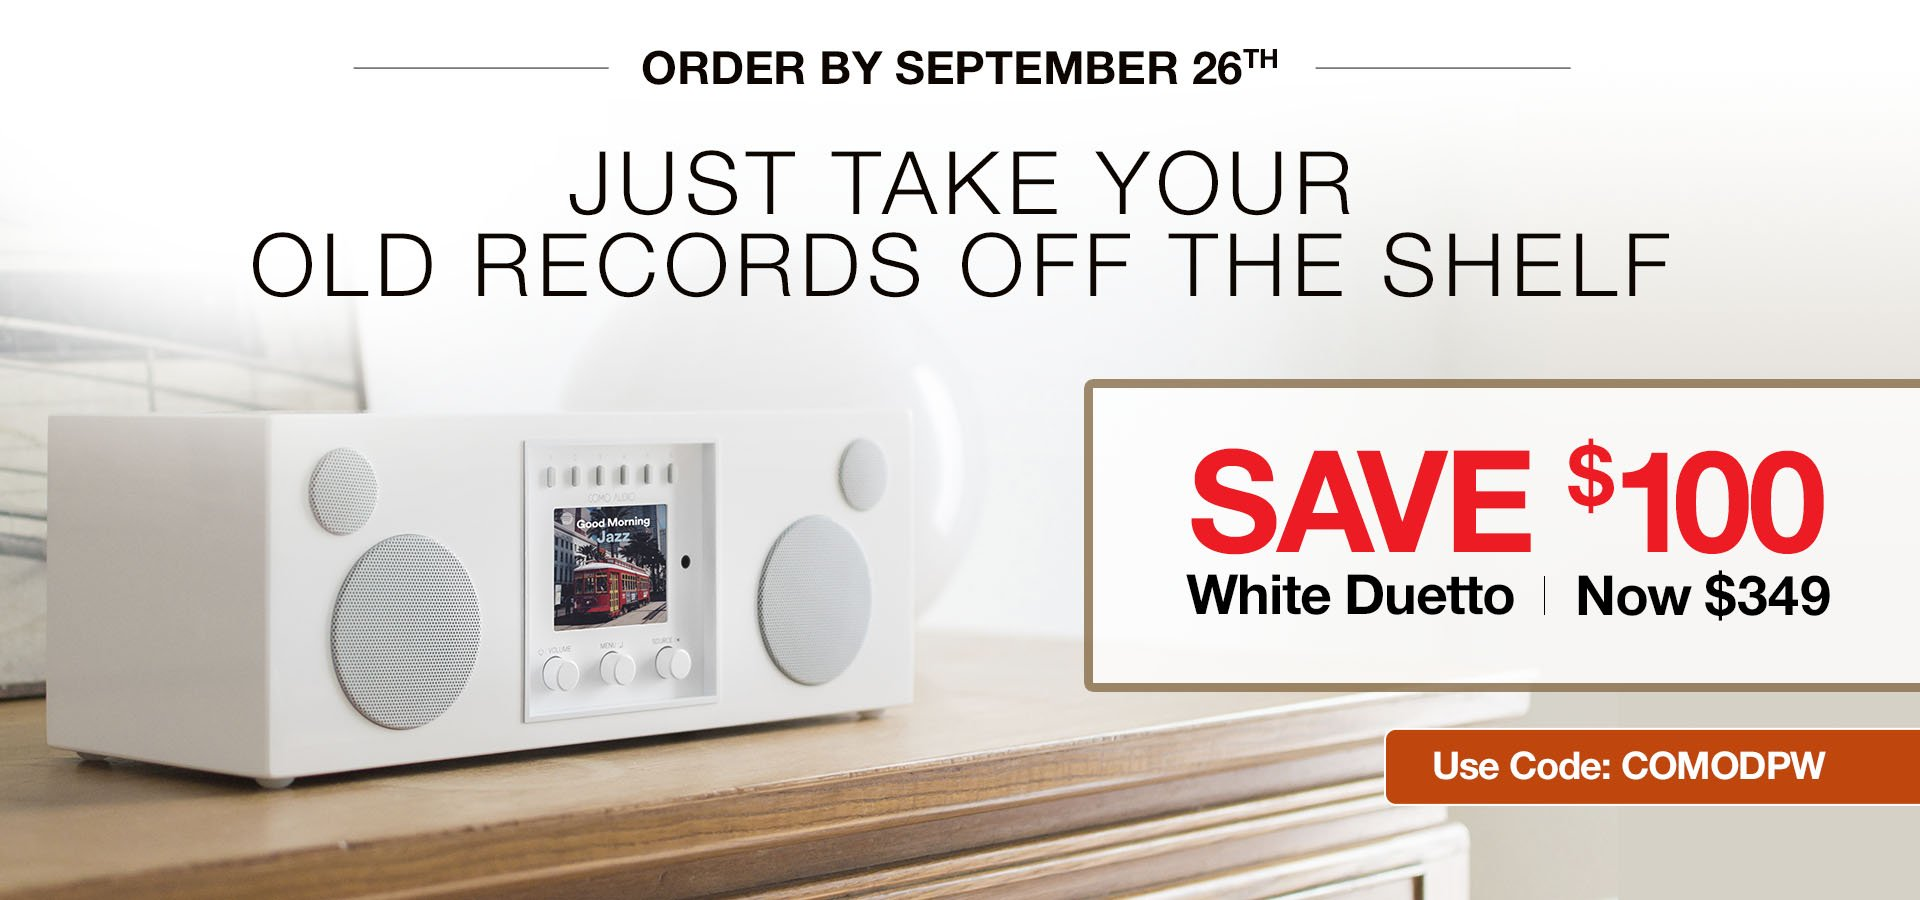 $100 Off Piano White Duetto